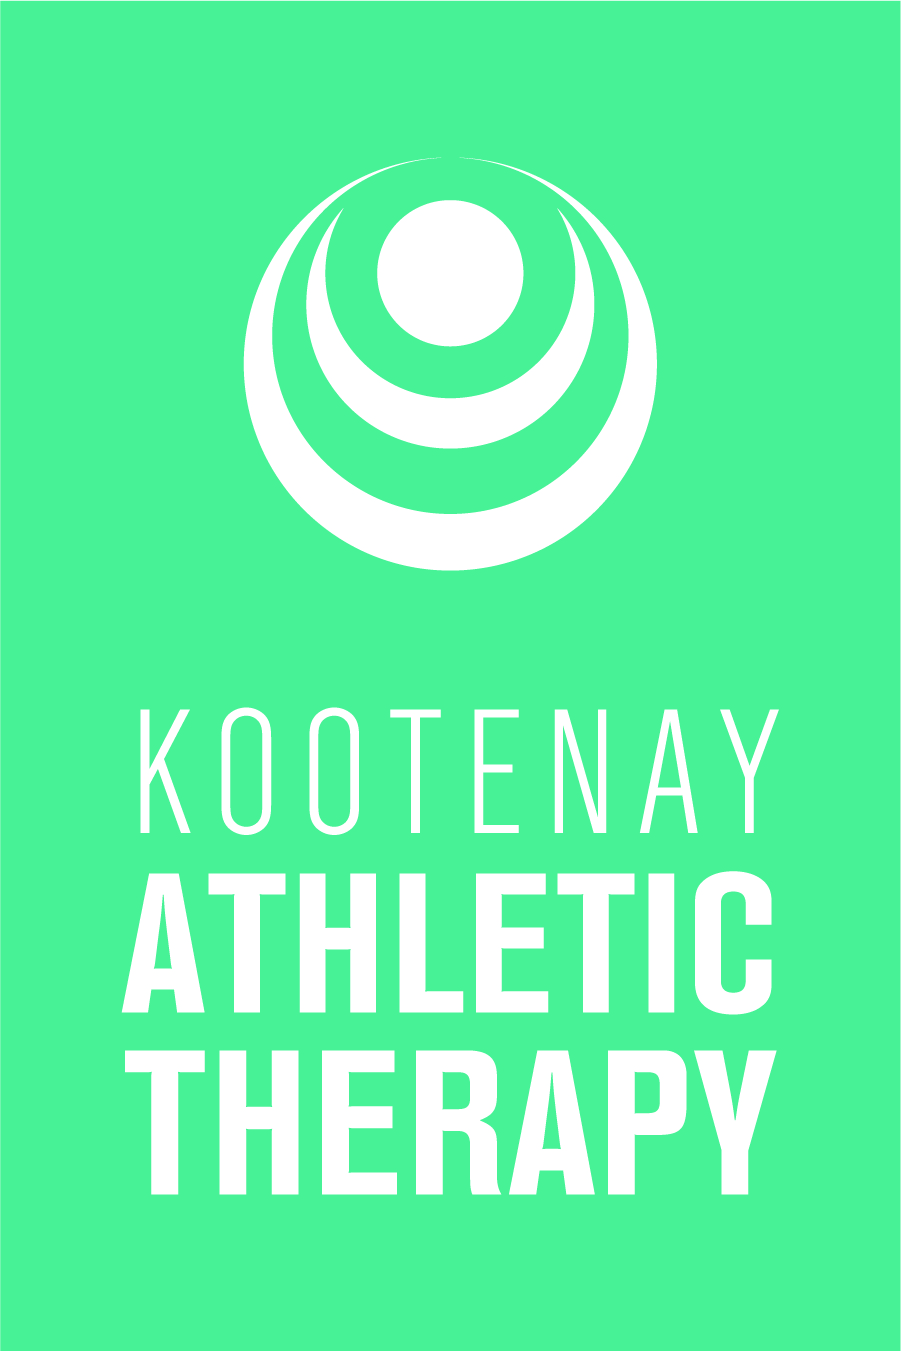 Kootenay Athletic Therapy Logo